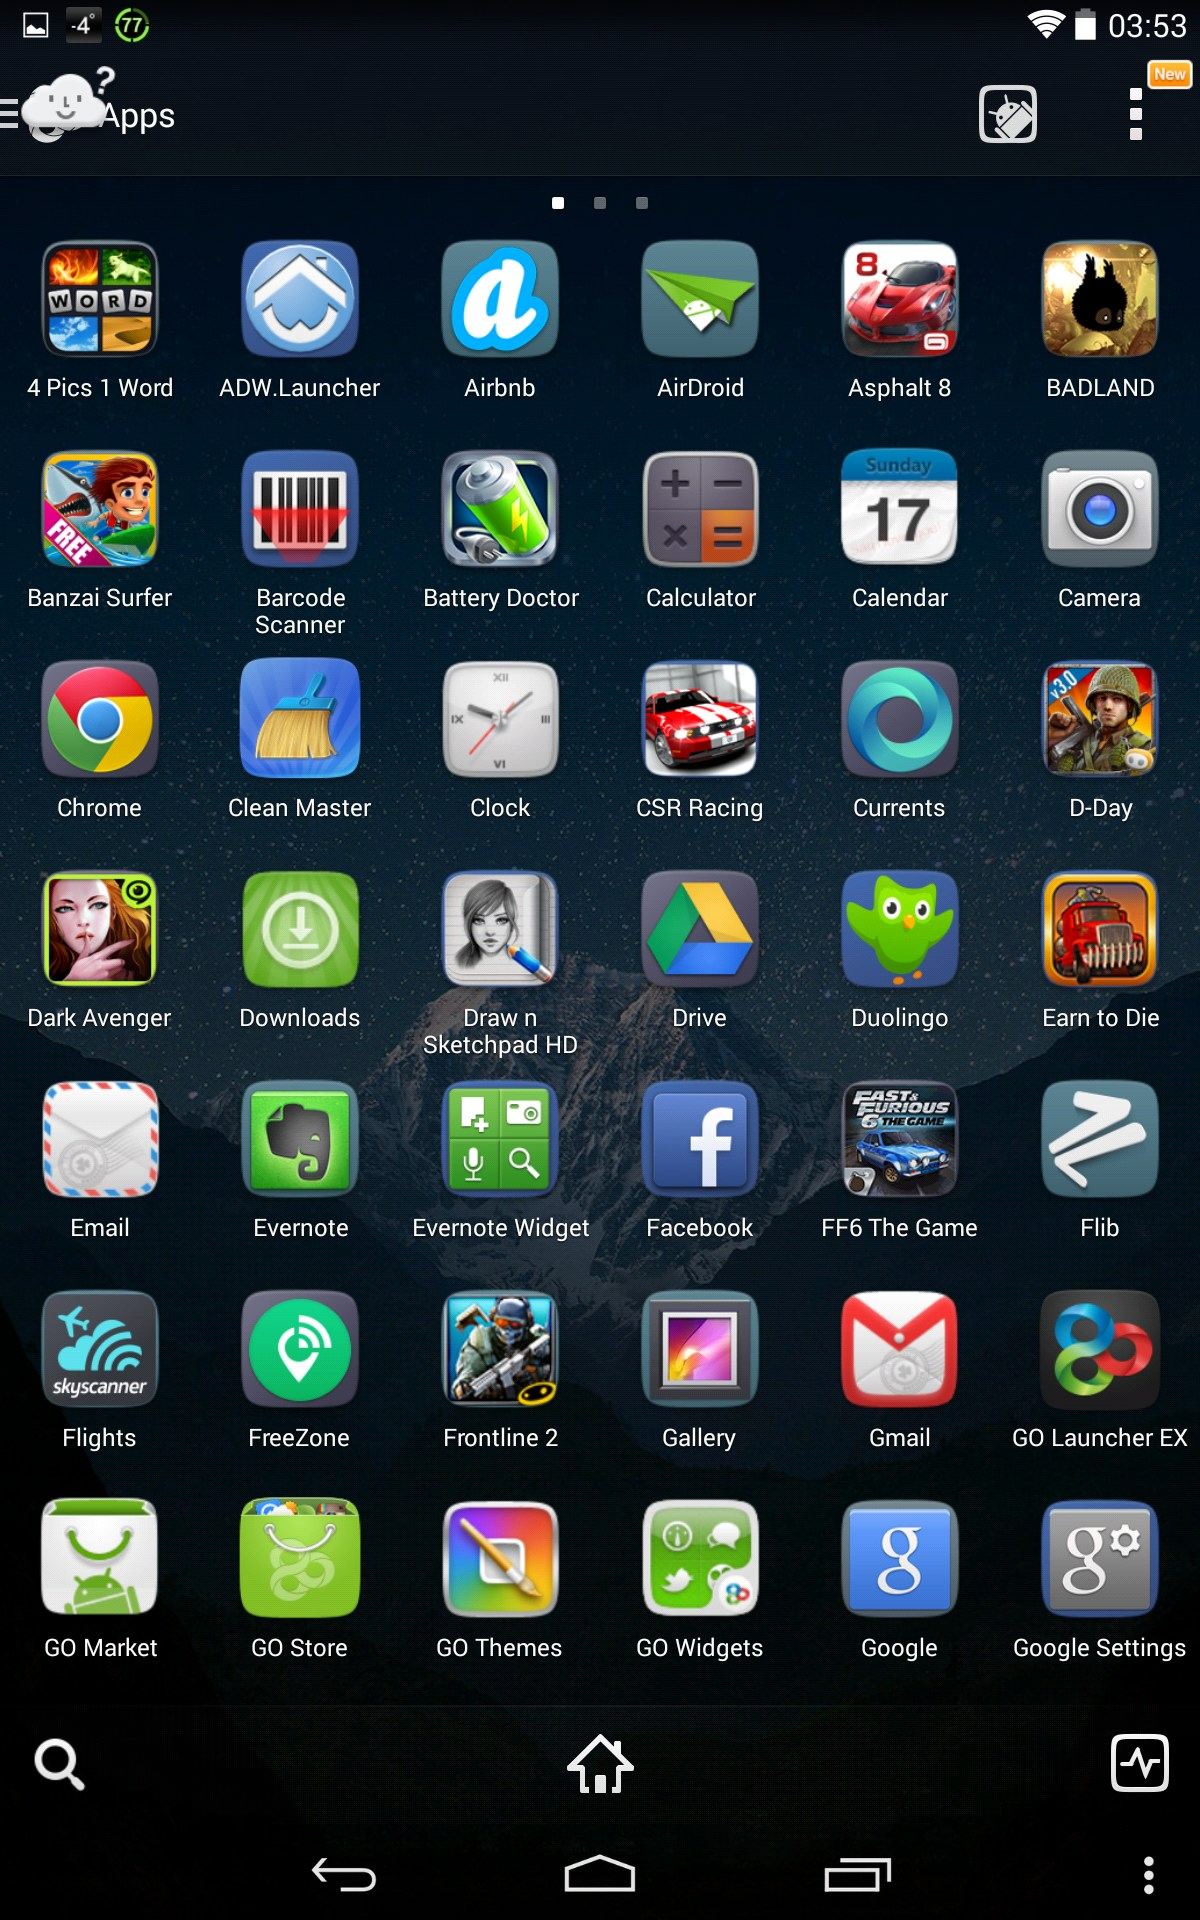 GO Launcher EX For Sony Xperia J